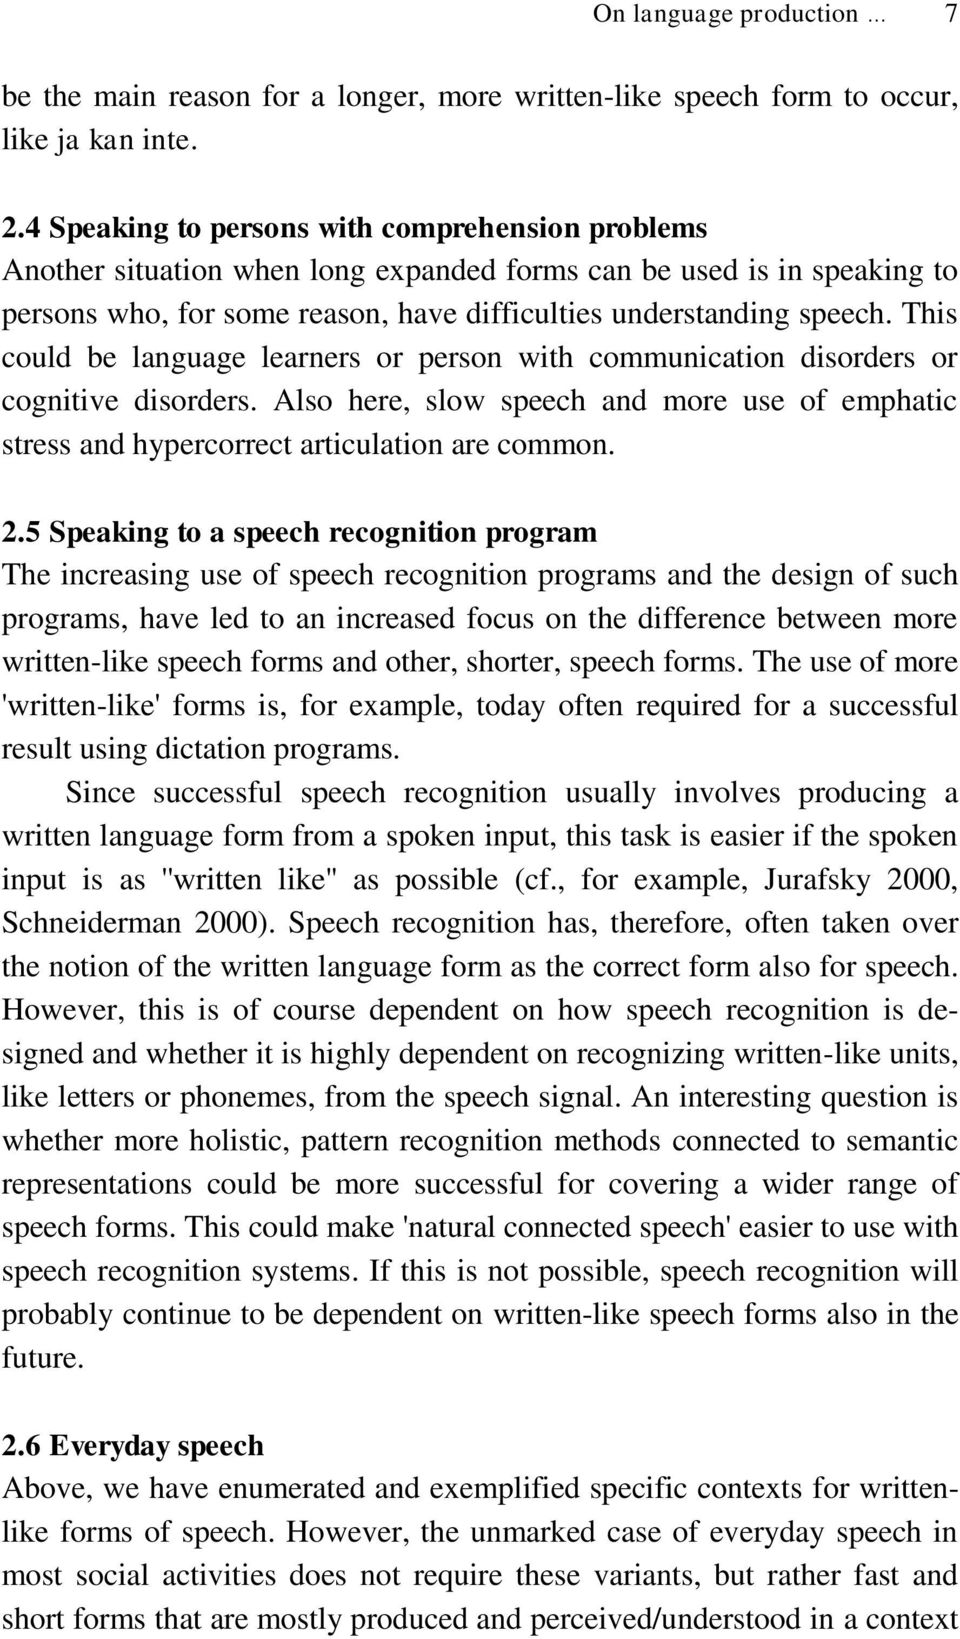 This could be language learners or person with communication disorders or cognitive disorders. Also here, slow speech and more use of emphatic stress and hypercorrect articulation are common. 2.